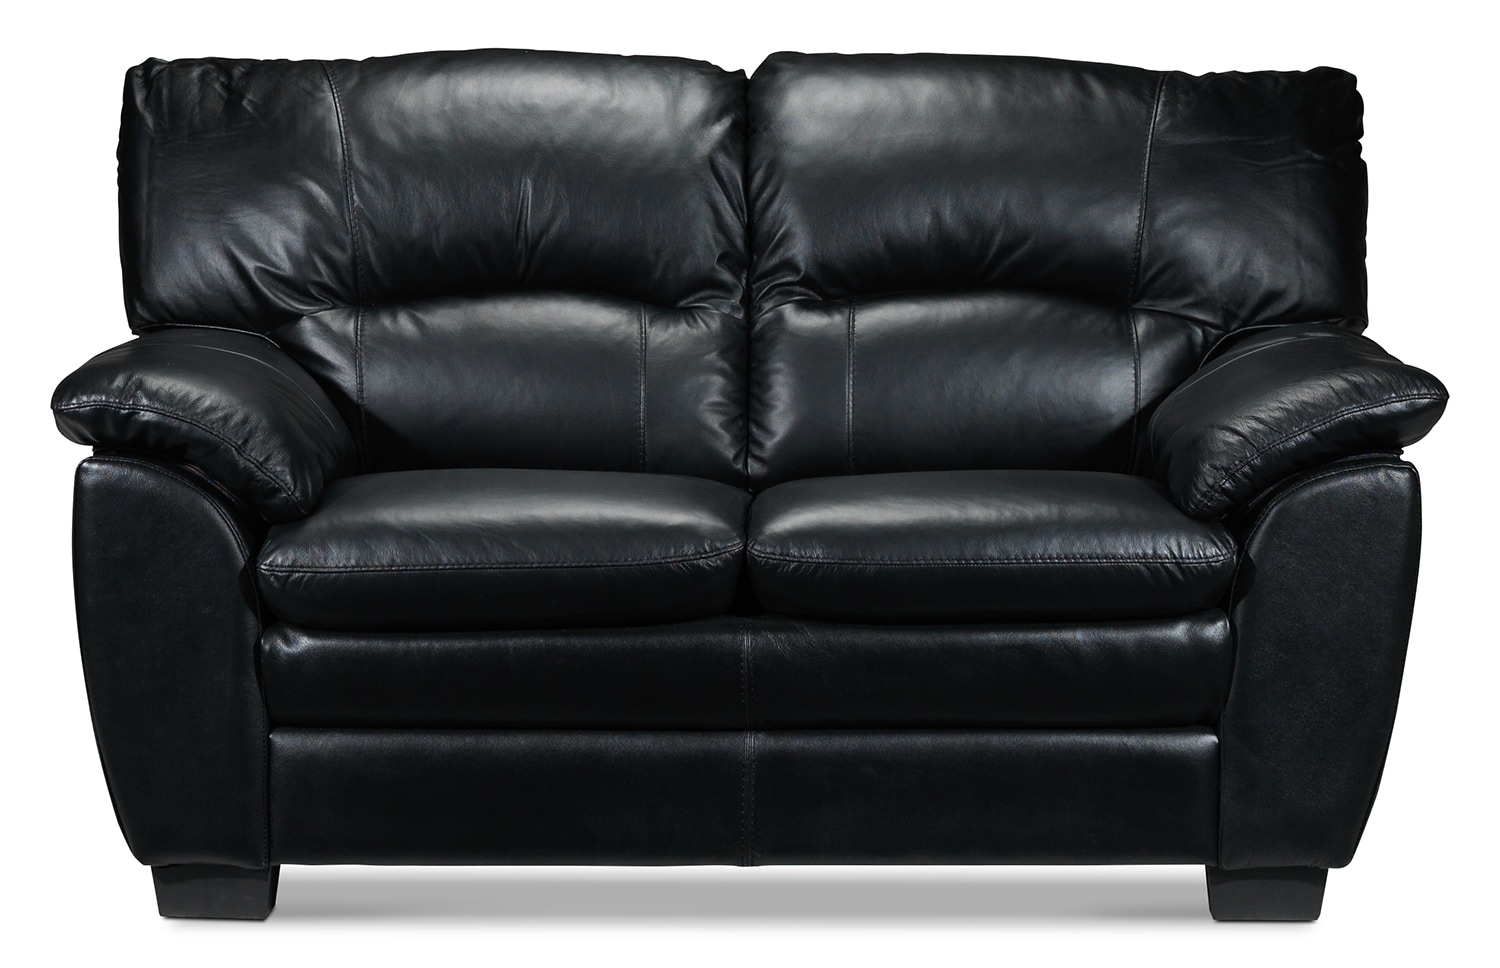 Living Room Furniture - Rodero Loveseat - Black